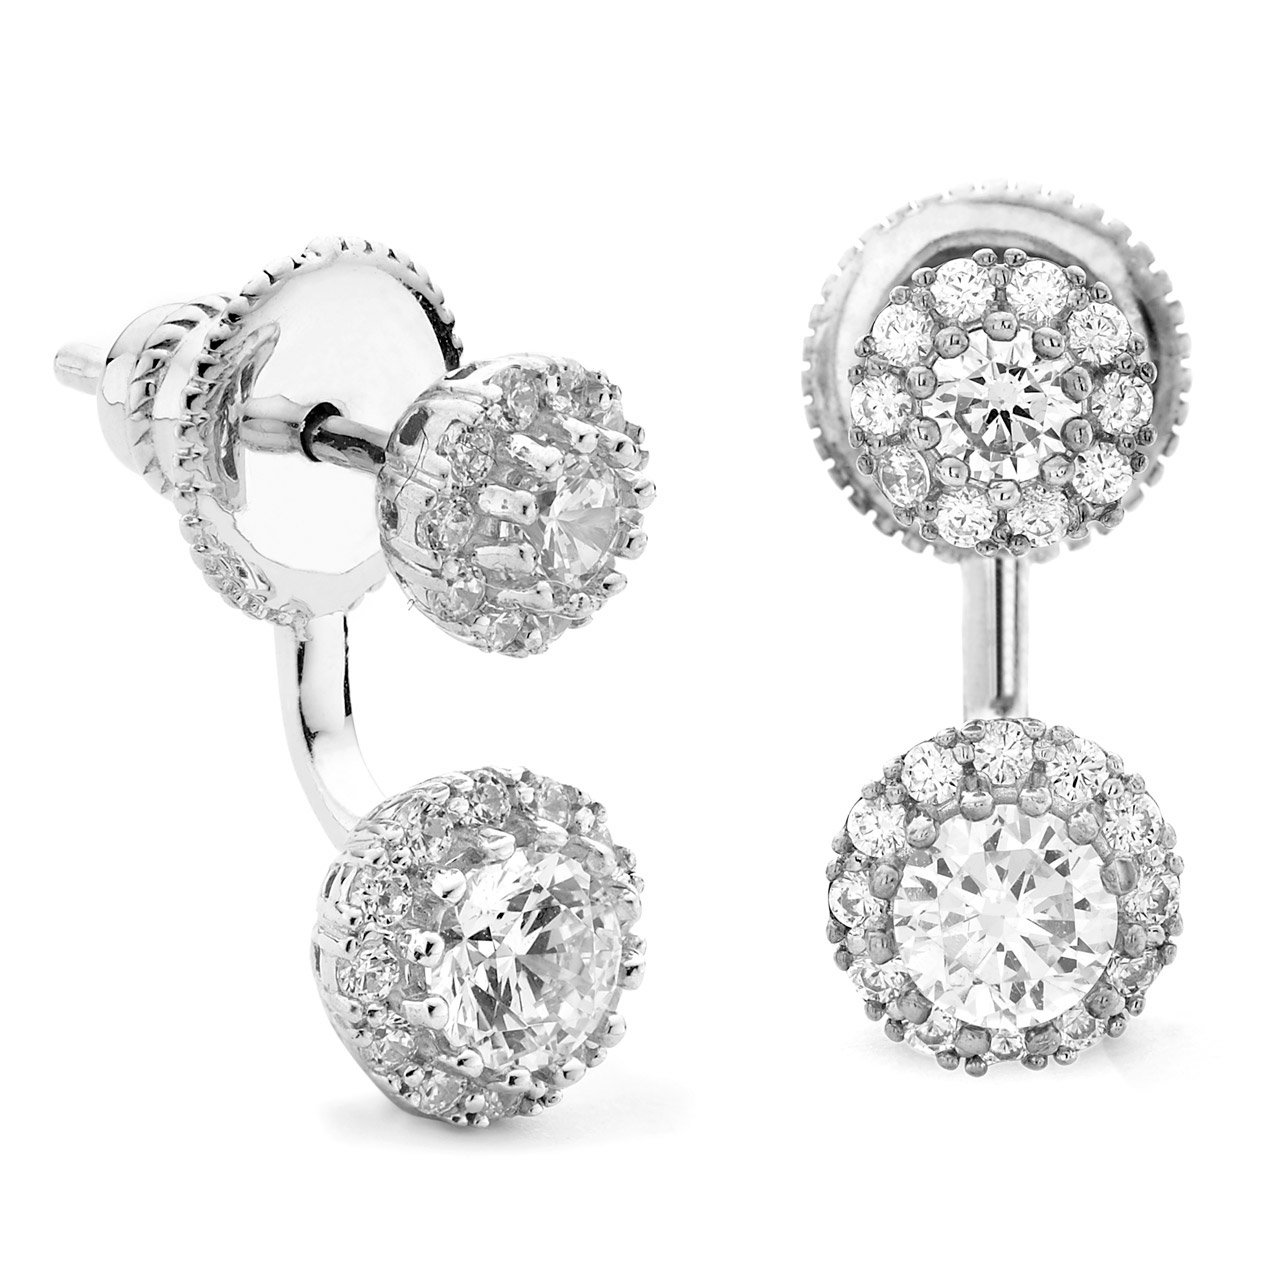 e35545ec1 Silver Swing Earrings with CZ Halos Front and Back